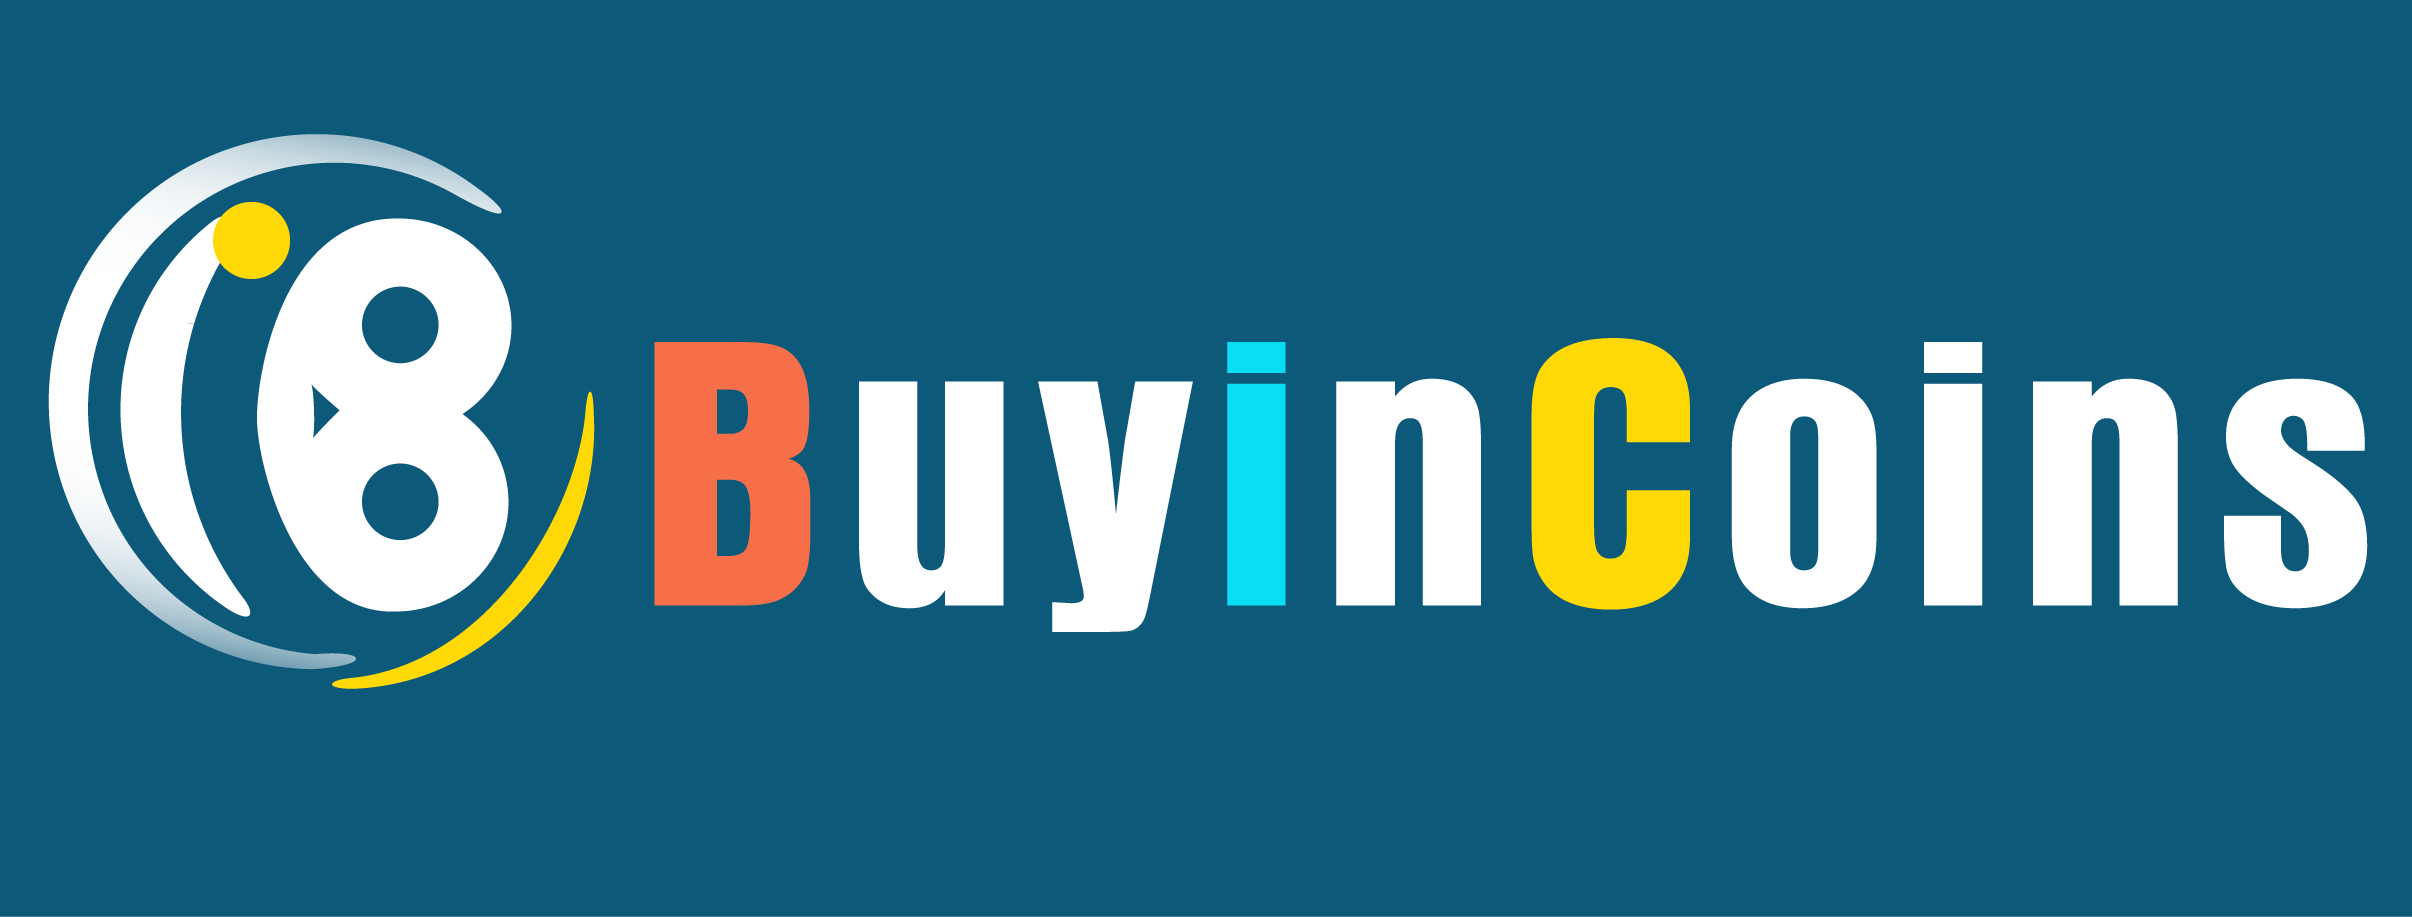 BuyInCoins logo large